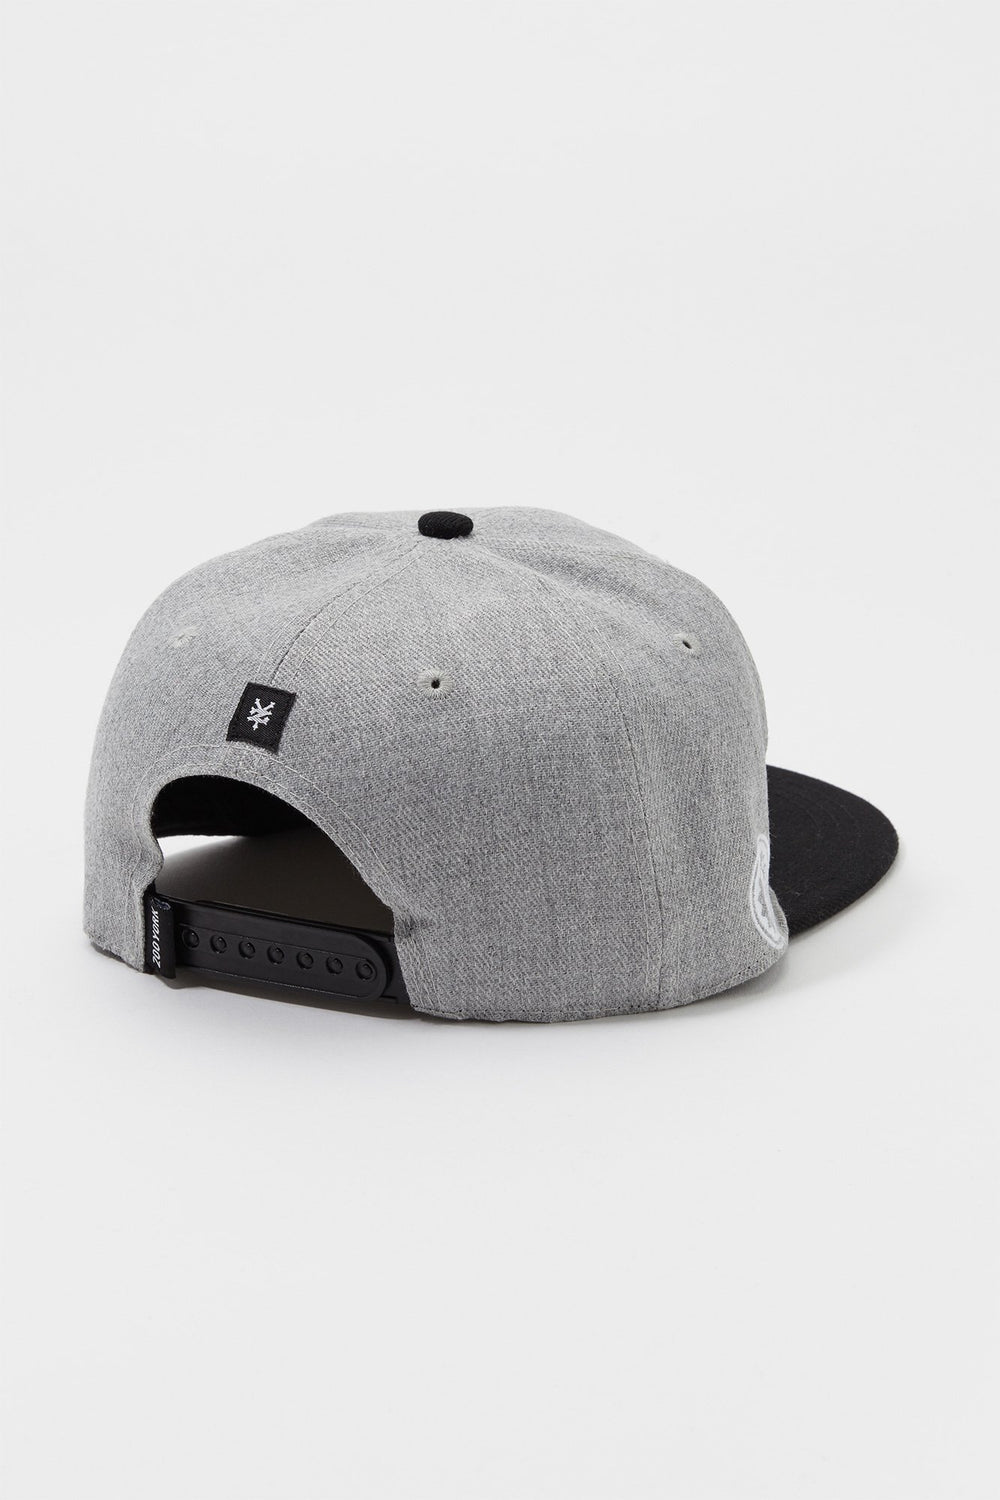 Casquette Patch Zoo York Homme Gris